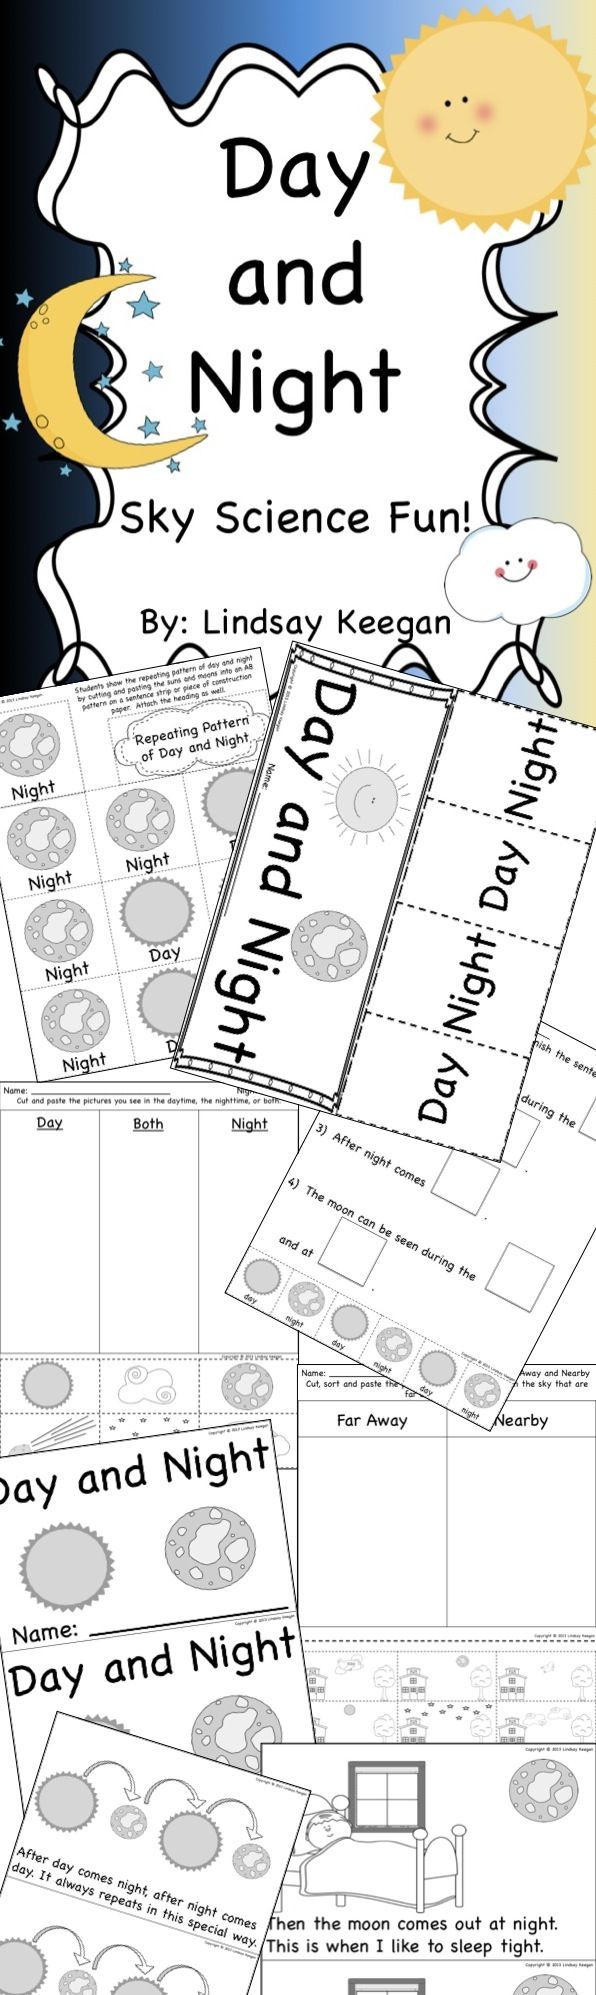 Super fun activities for Day and Night science.